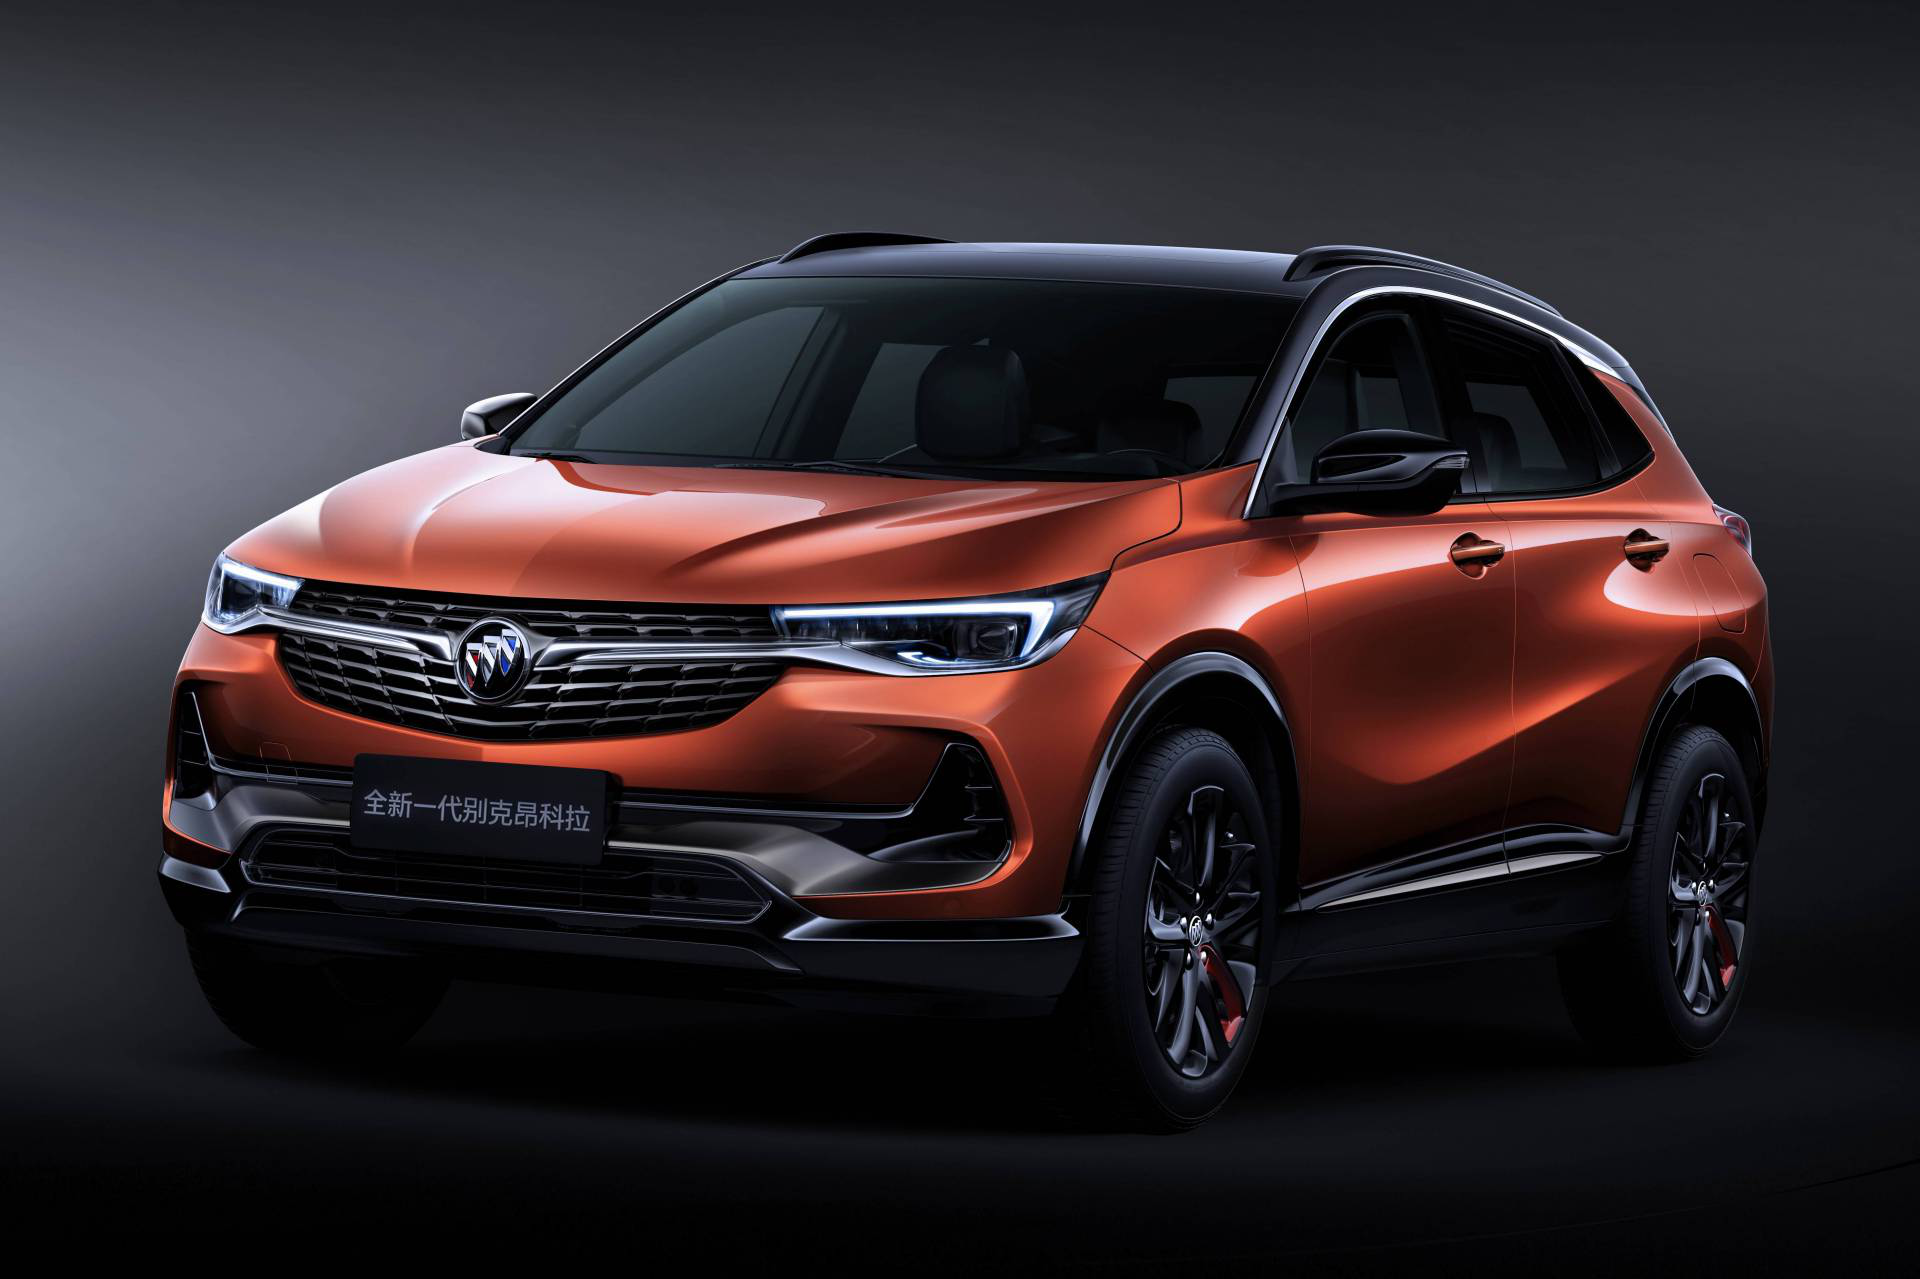 Buick Uncovers Two New Encore Suvs For China A Small One And The Compact Gx Carmojo The Encore Gx Is A Longer Wheelbase Comp Buick Encore Buick New Suv